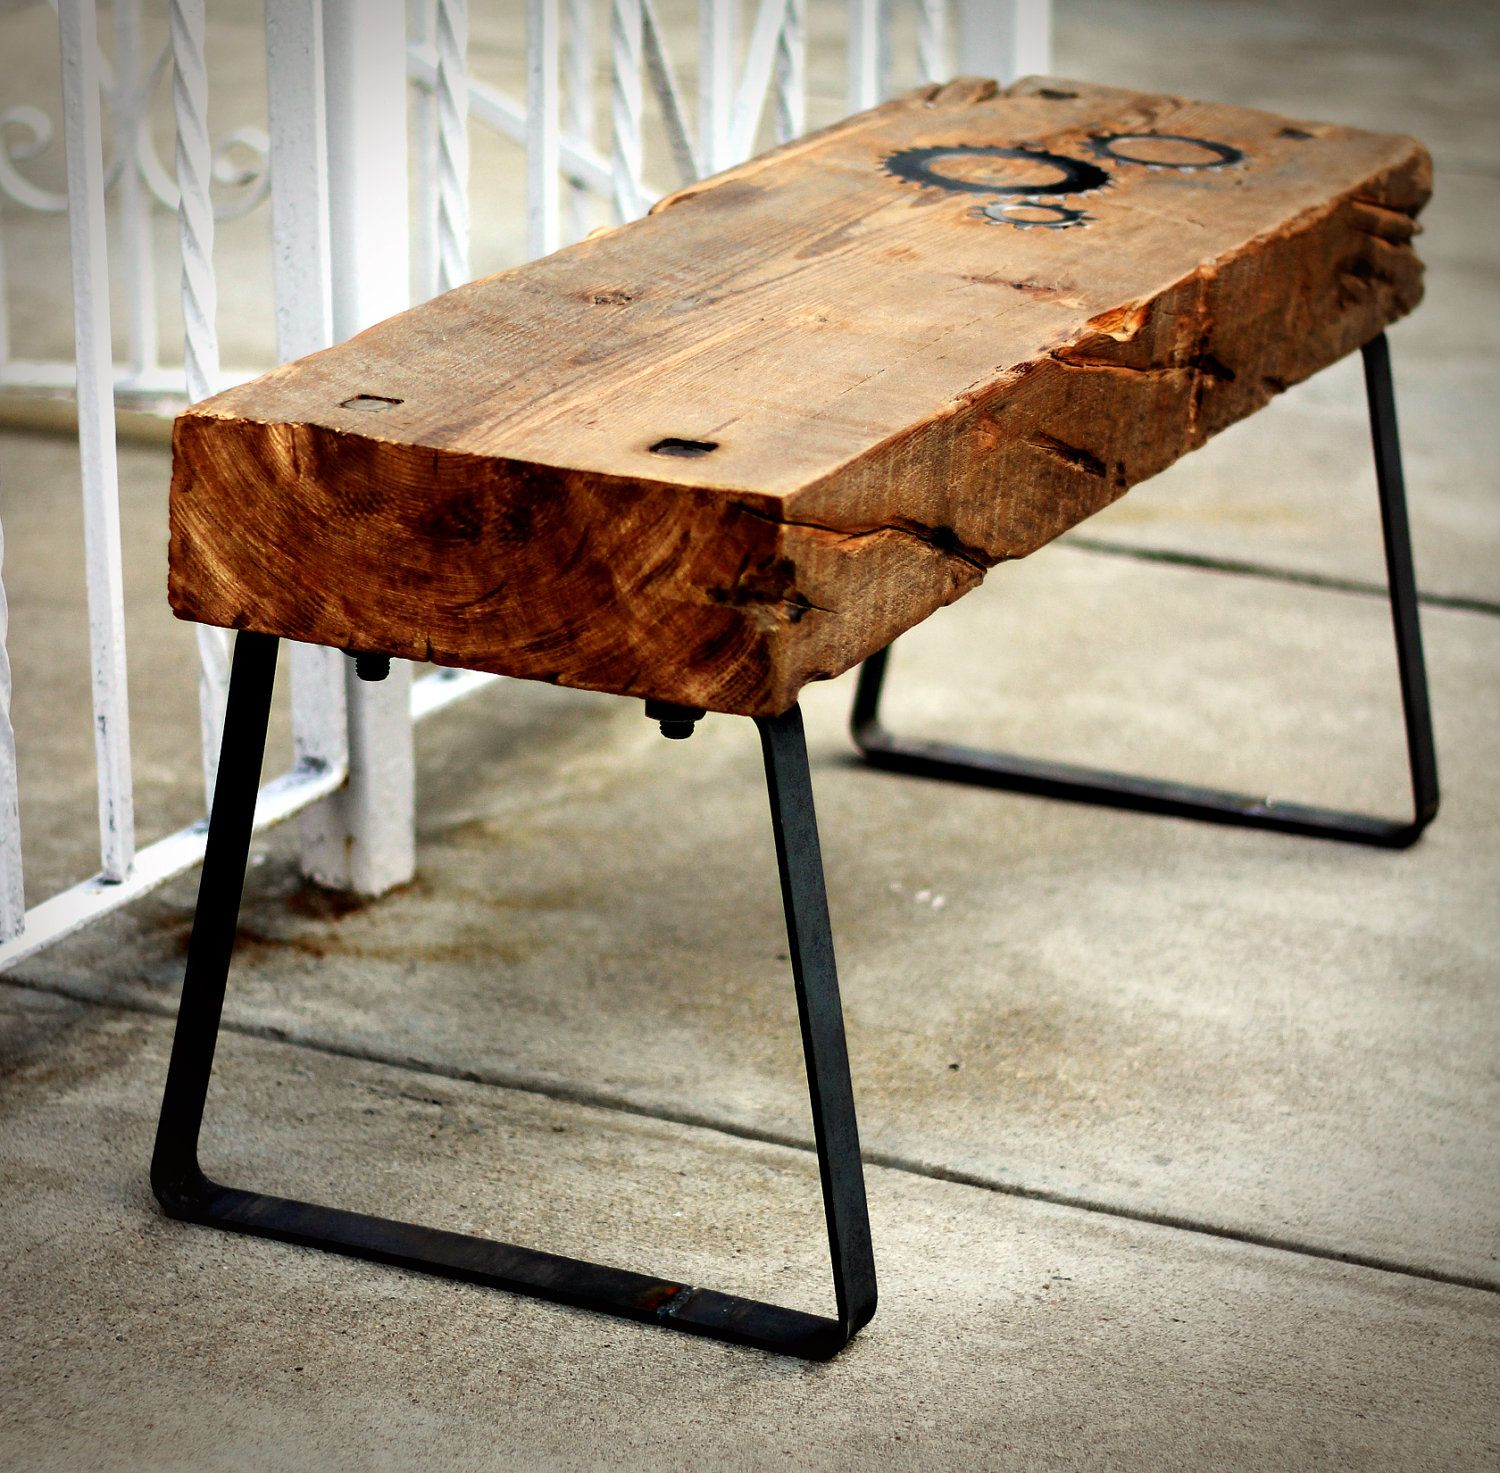 Raw Timber Furniture Reclaimed Barn Wood Bench Raw Steel Legs And Inlaid Coggs